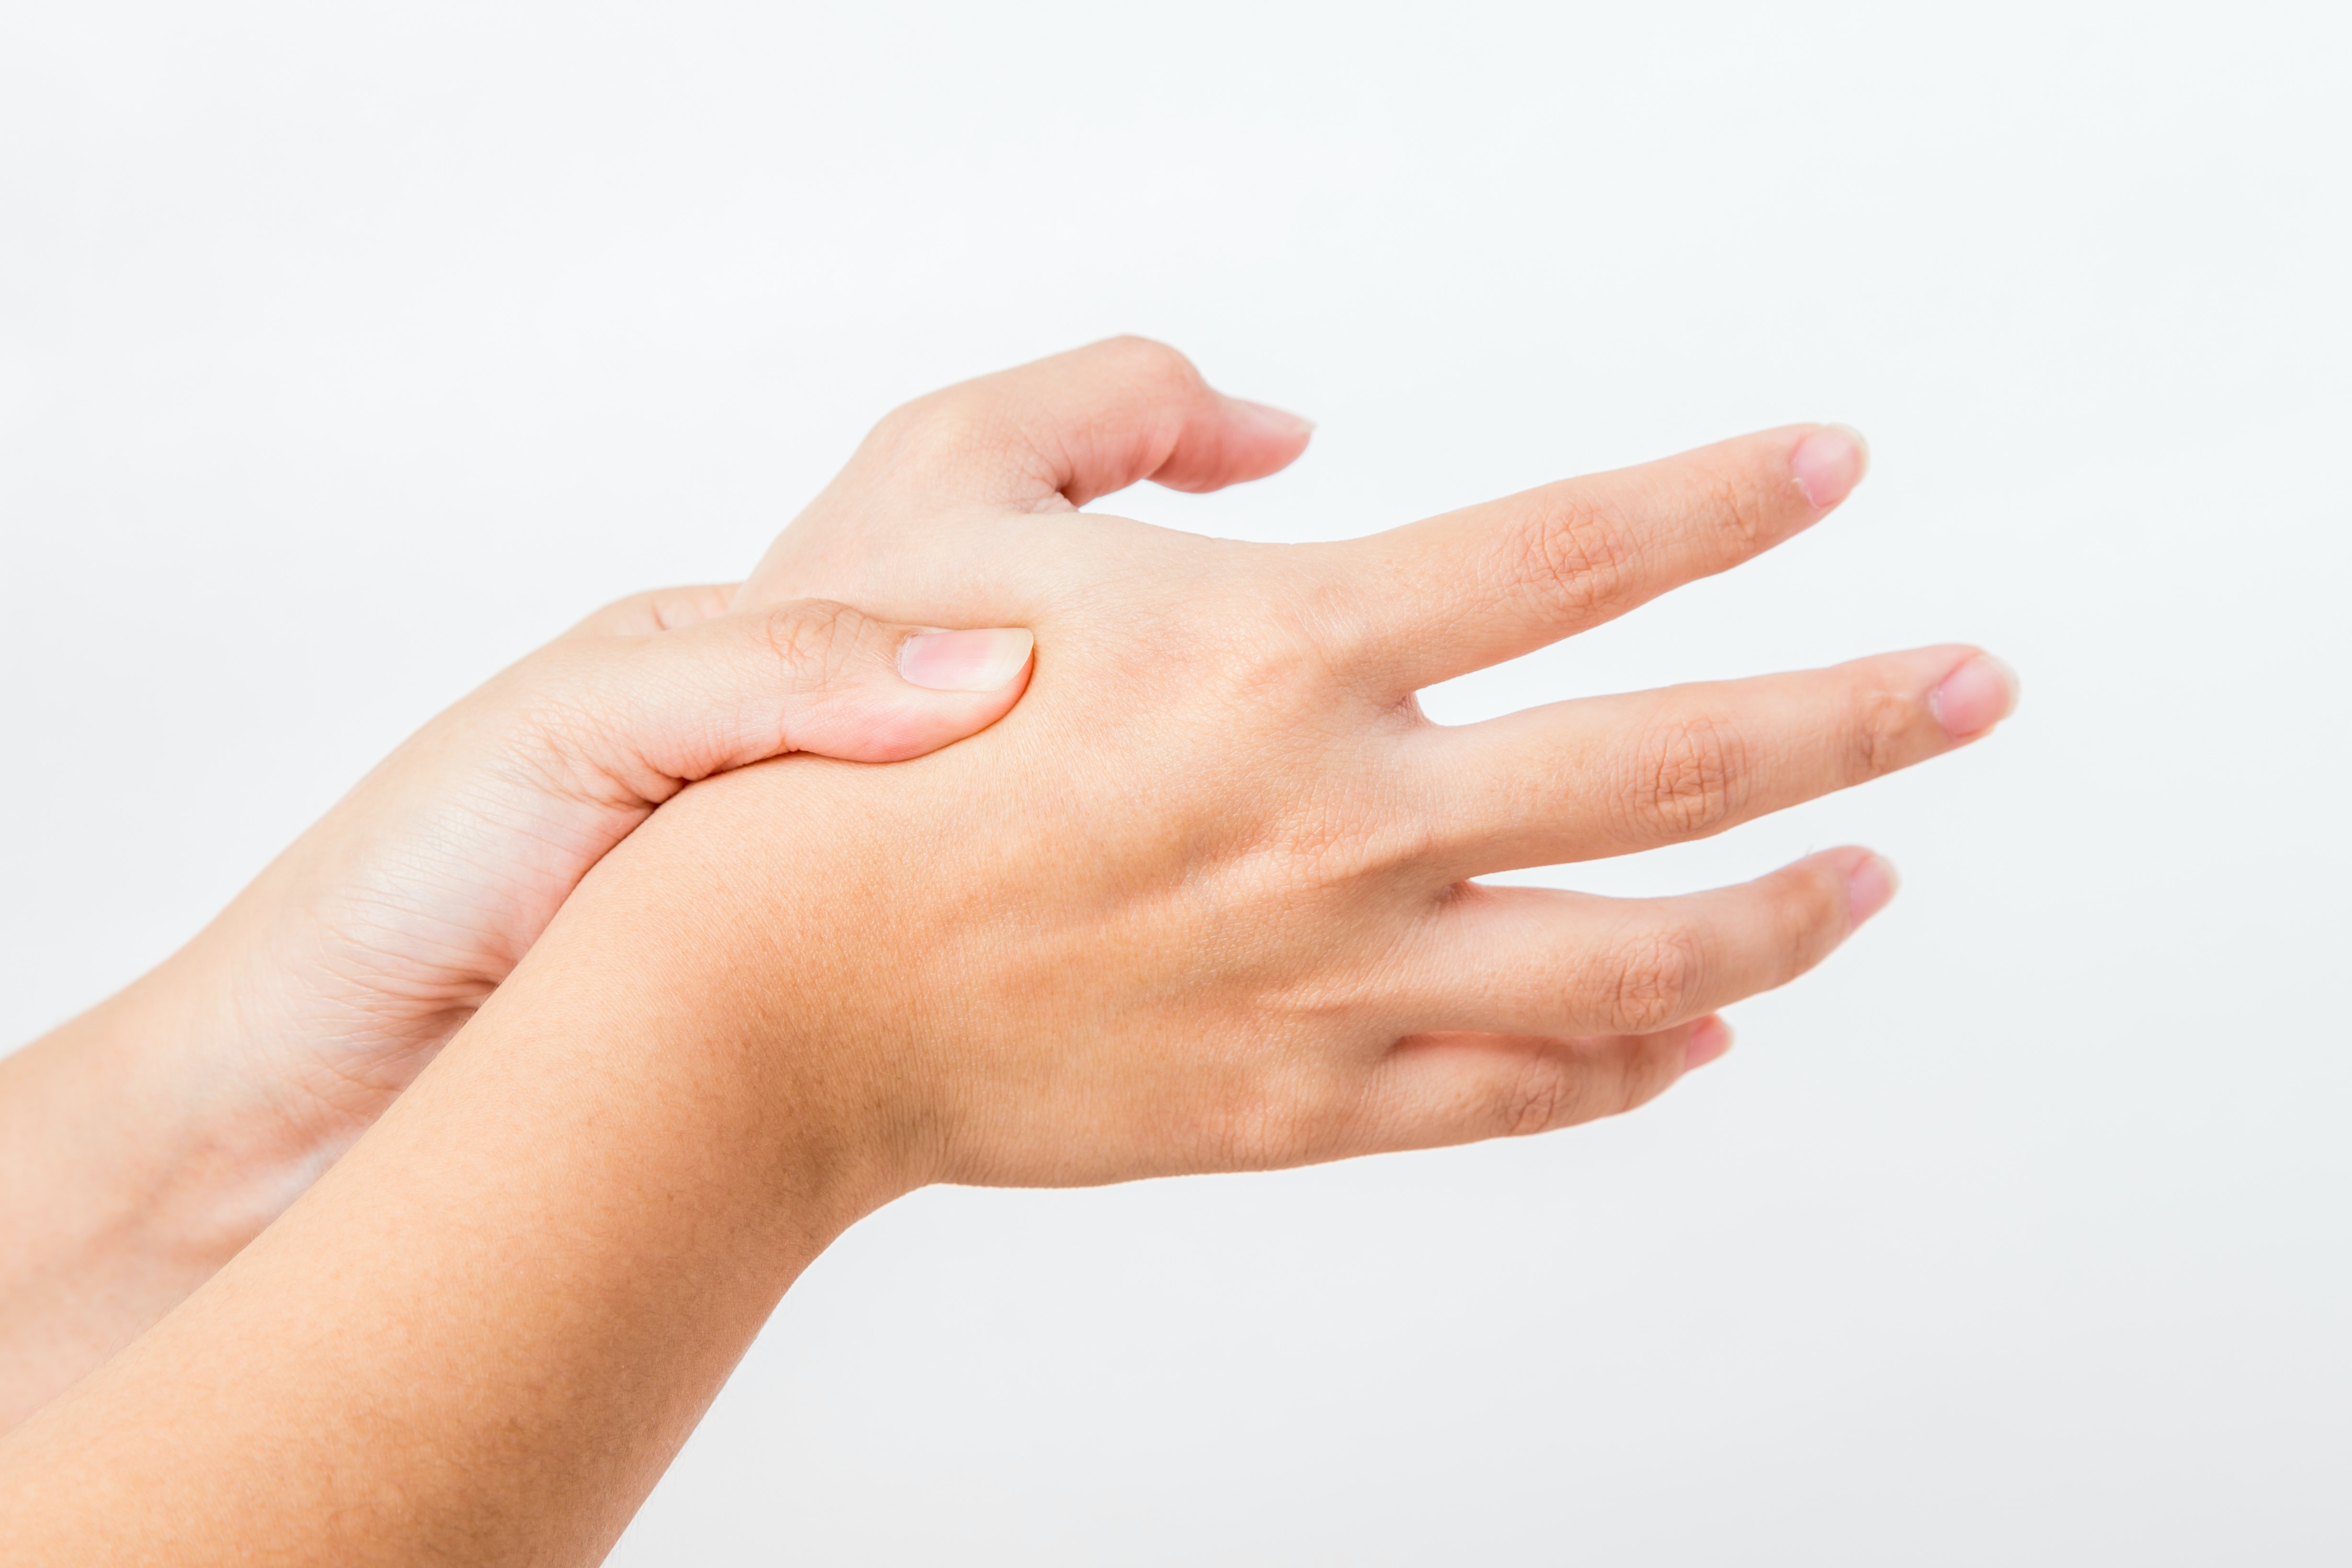 An image depicting a person suffering from Thumb Arthritis symptoms